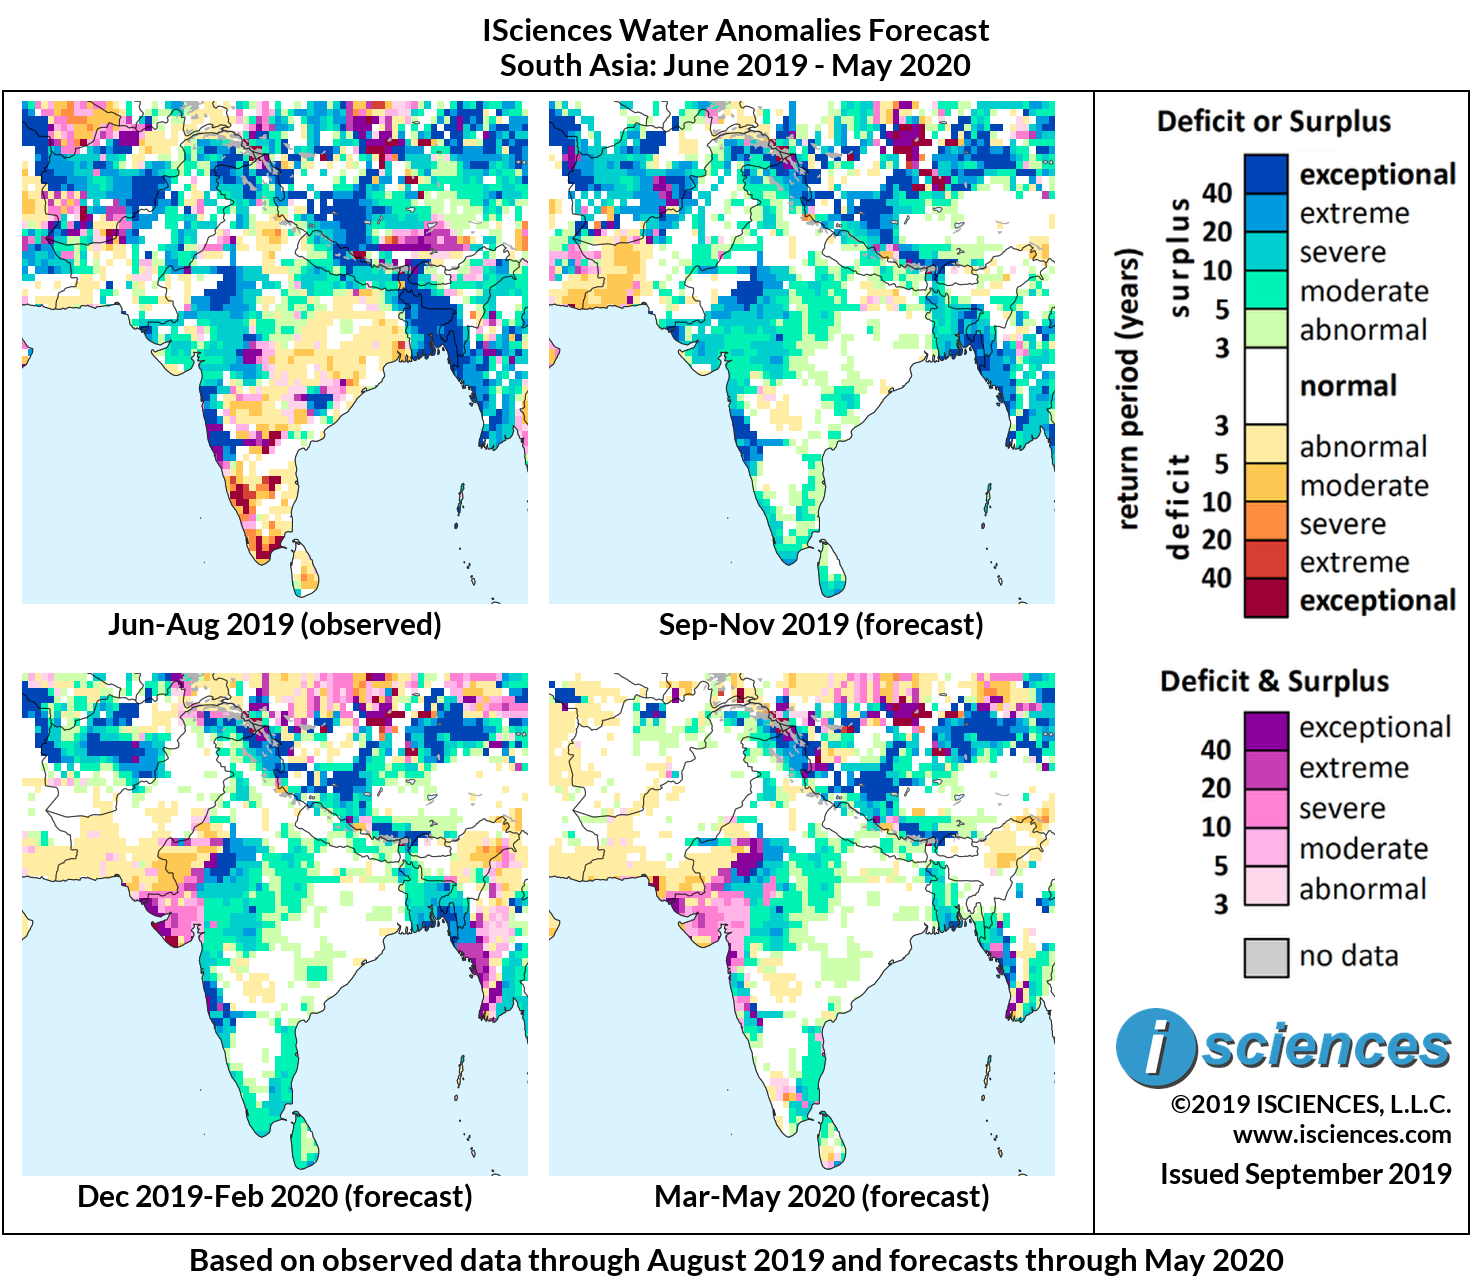 ISciences_South_Asia_Composite_Adjusted_201906-202005_3mo_panel.png